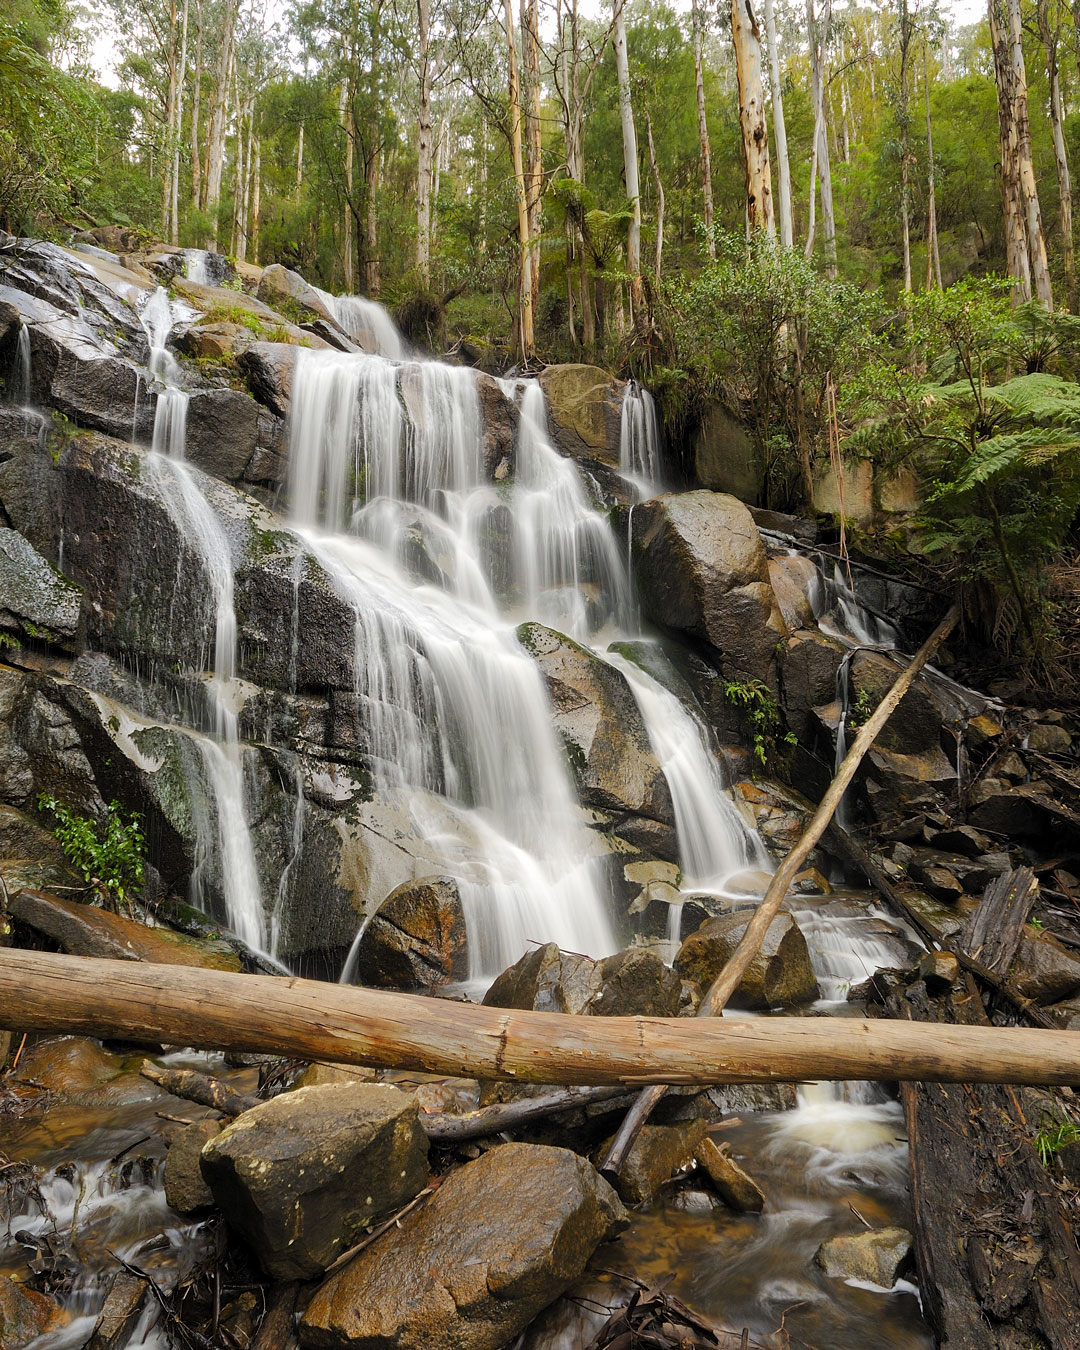 Water cascading over Toorongo Falls in West Gippsland, Victoria.